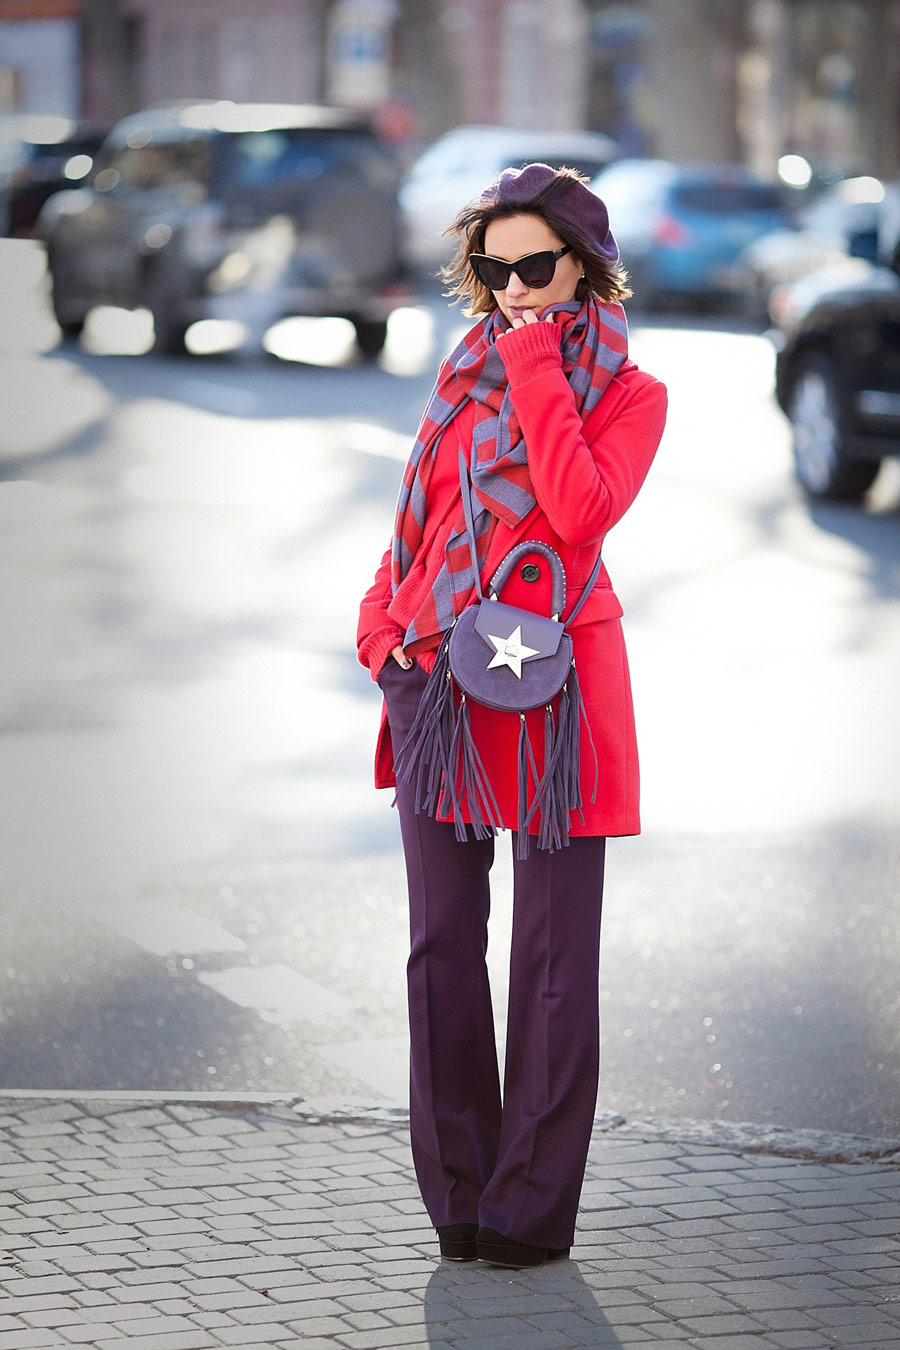 salar bag, salar milano bags, red coat outfit, colorblock outfit, winter outfit ideas,